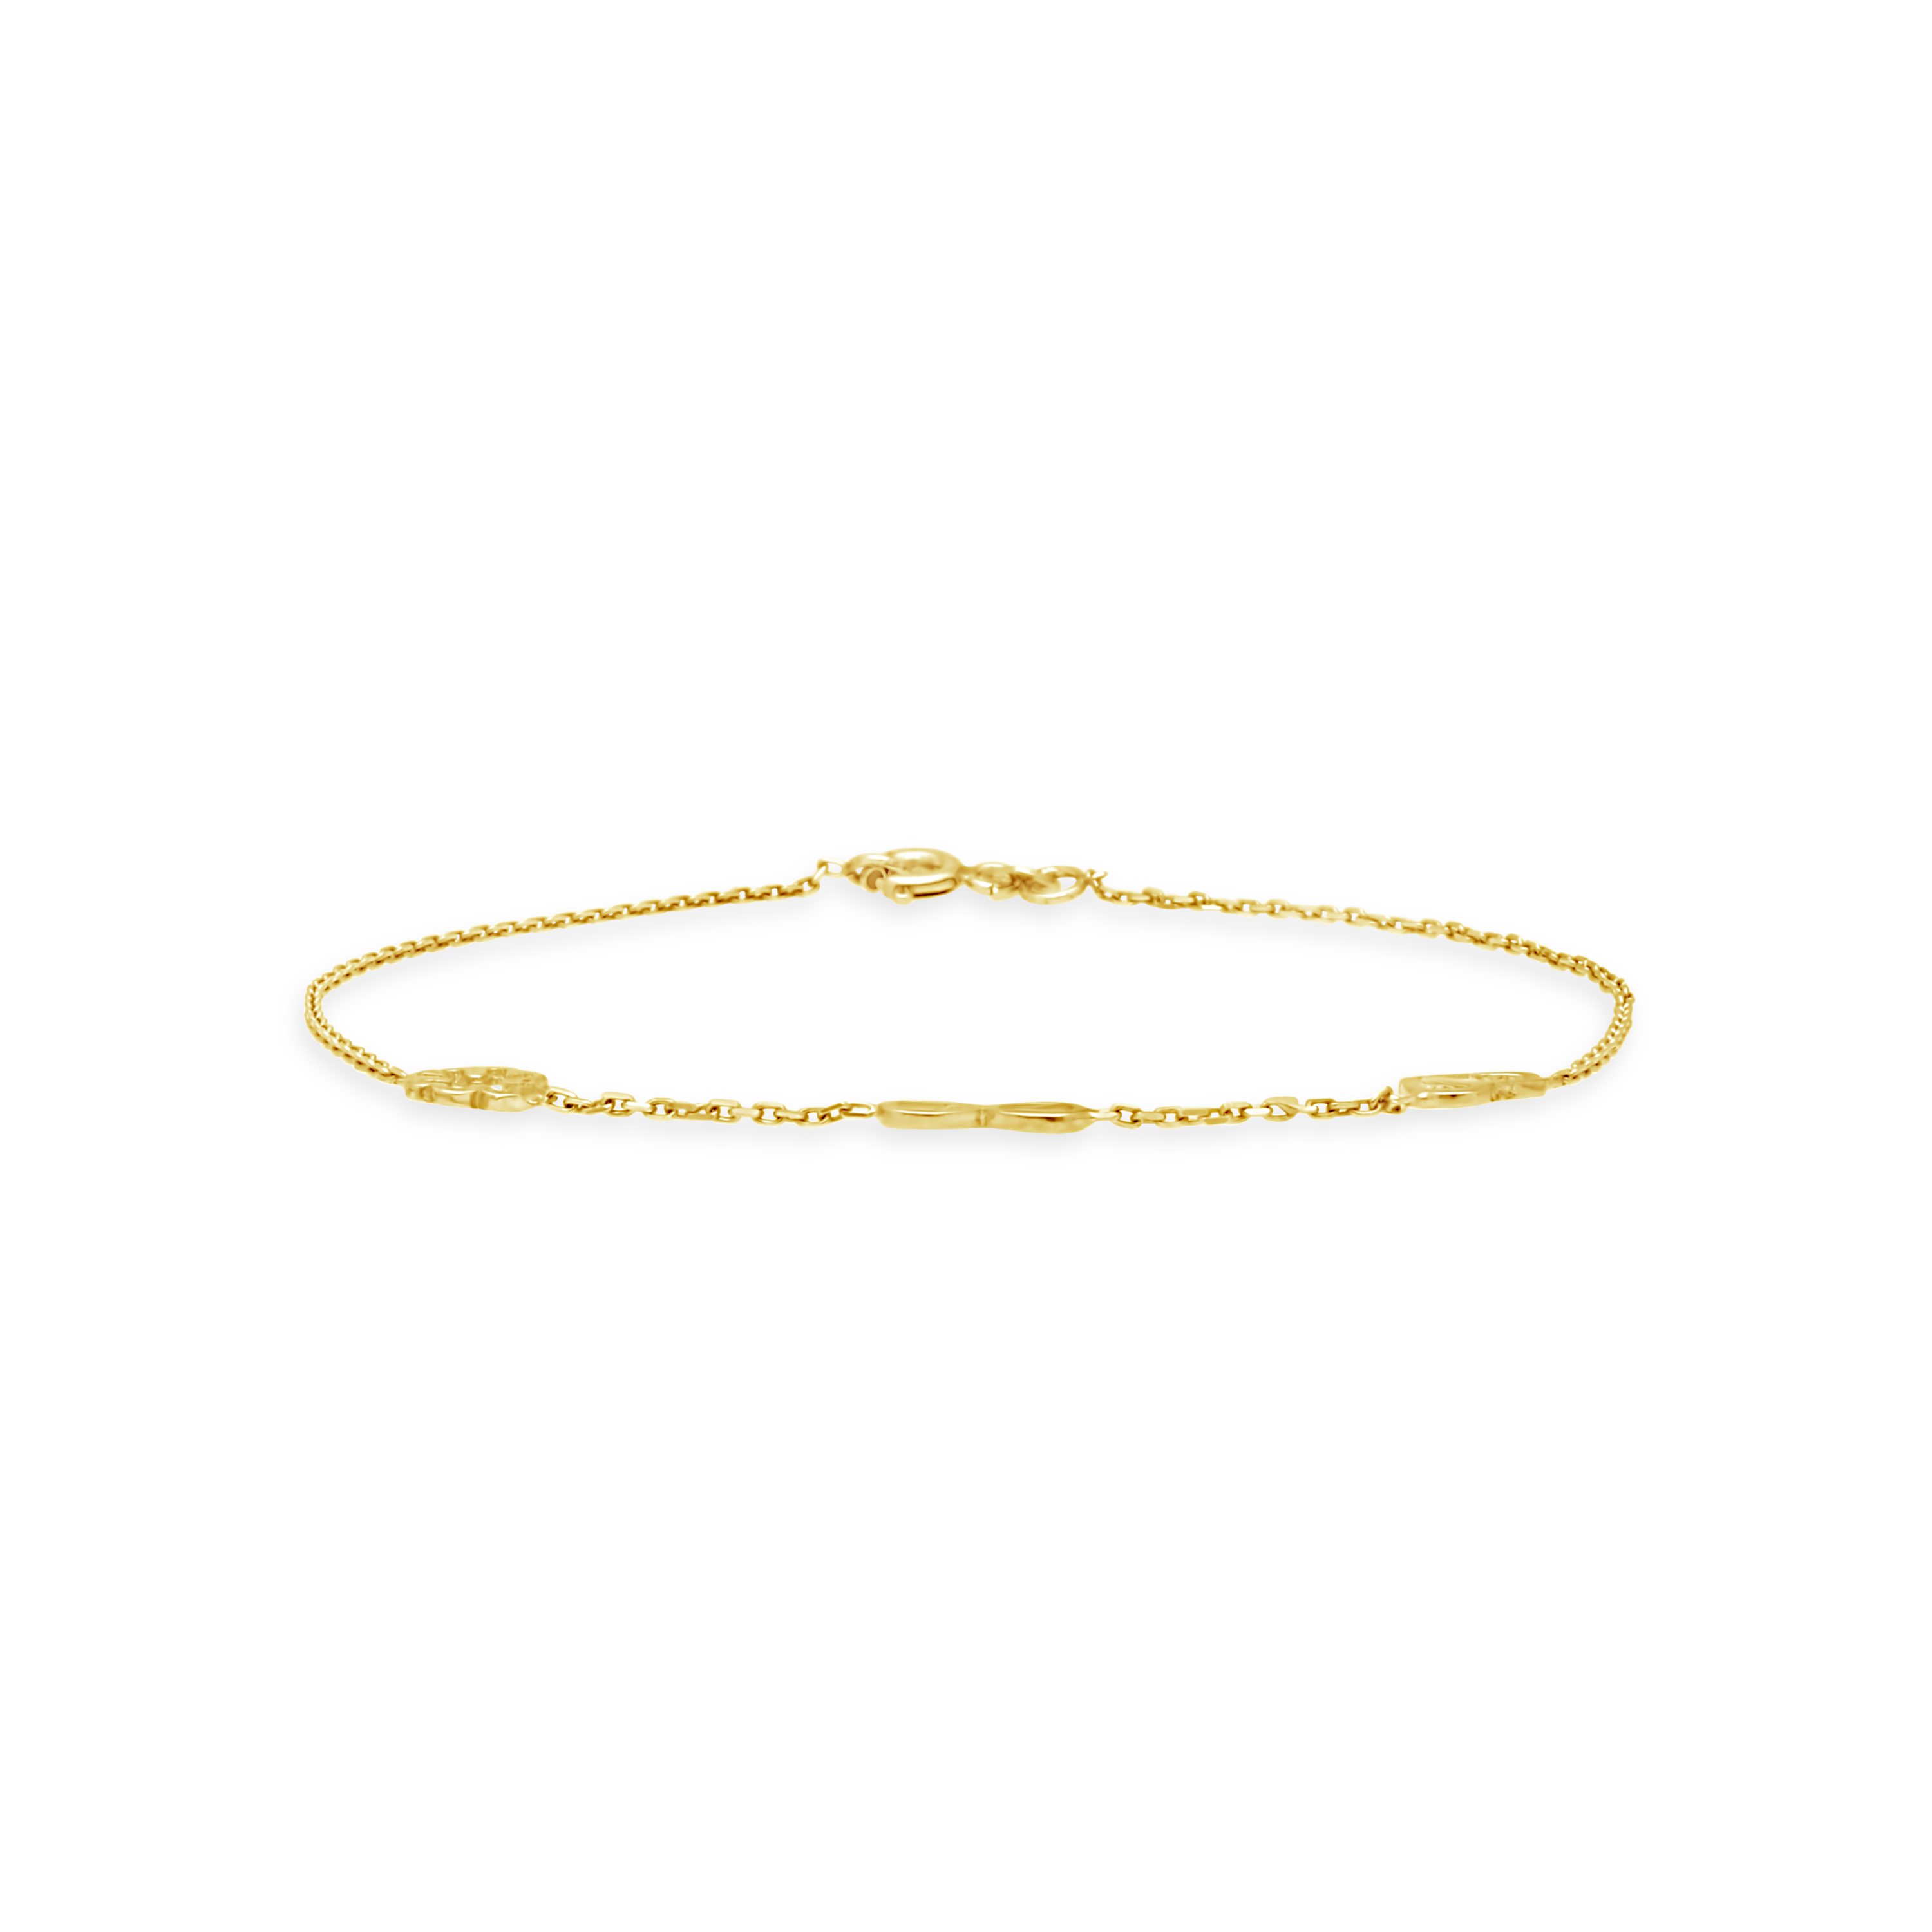 8c4884529206 9ct Gold 19cm Heart